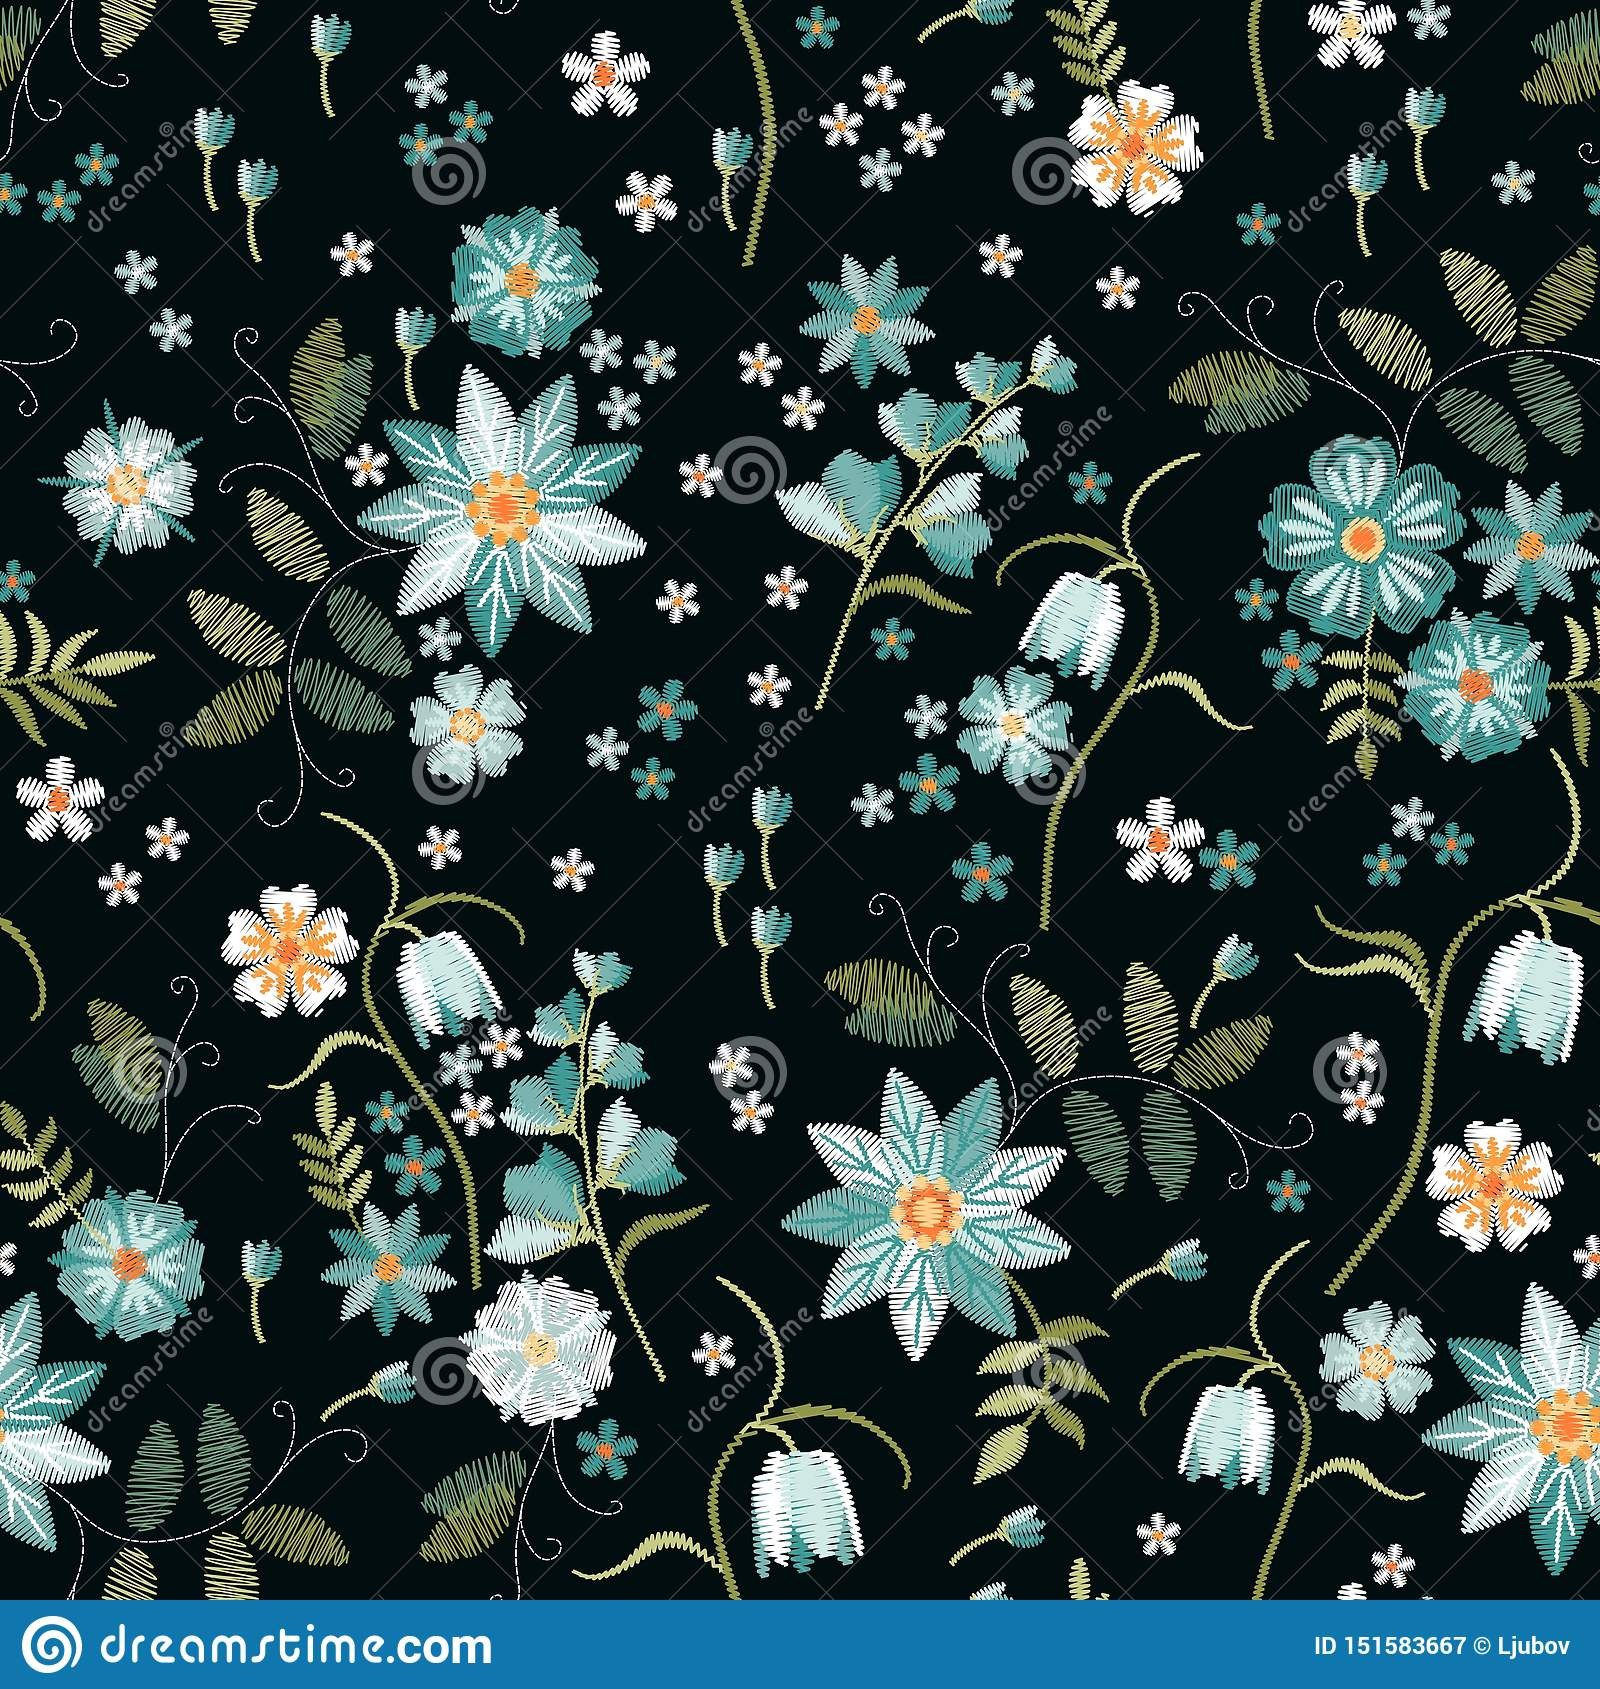 Embroidery seamless pattern with beautiful light blue wild flowers. Spring print. Fashion design